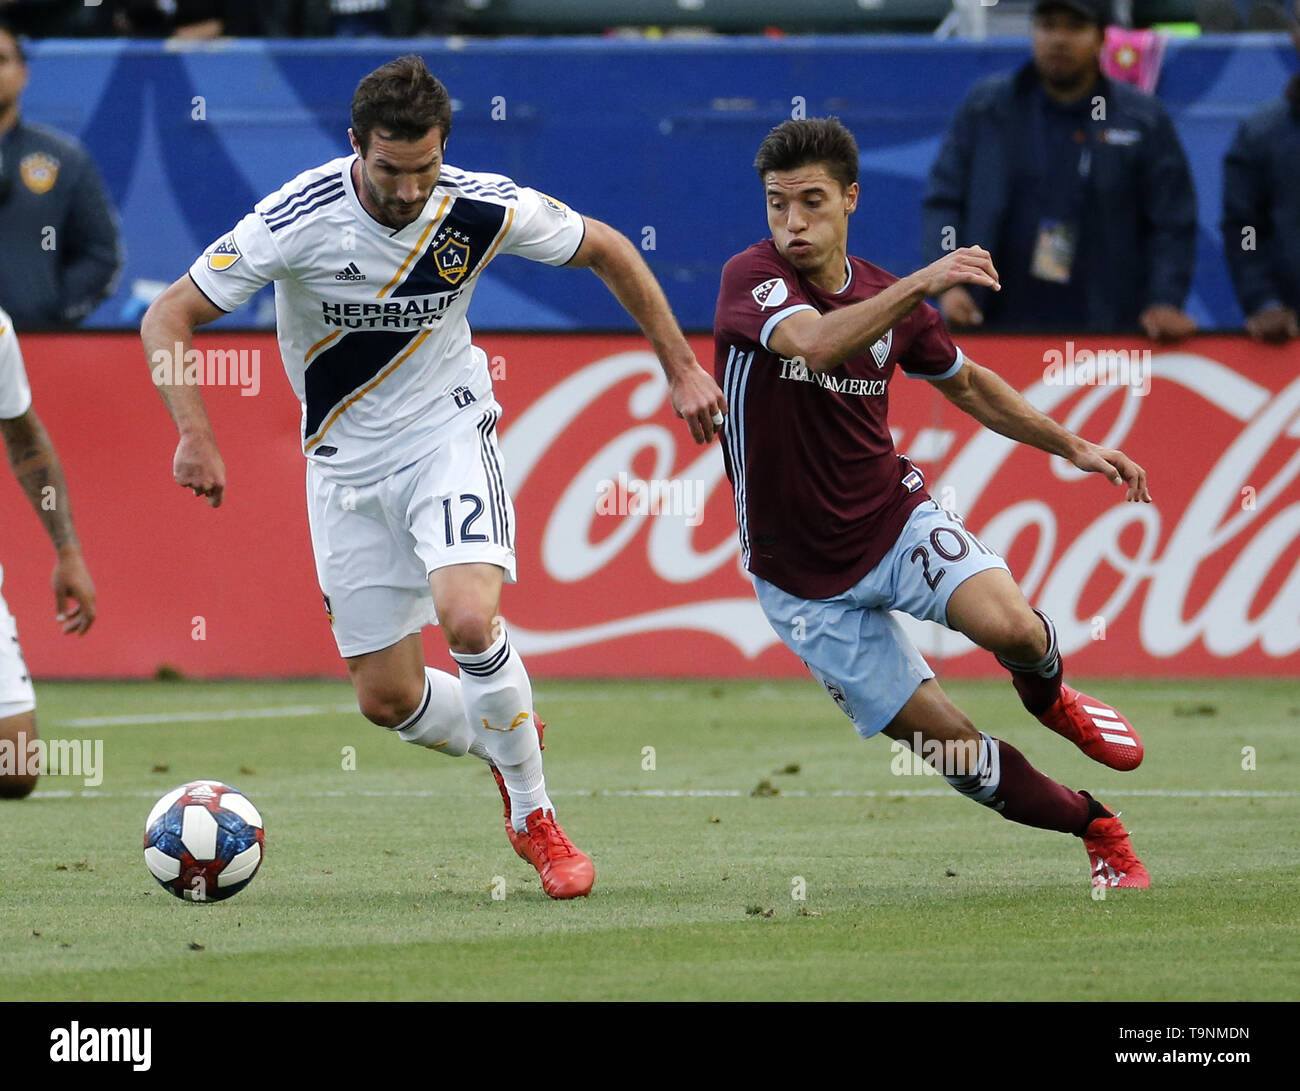 Los Angeles, California, USA. 19th May, 2019. LA Galaxy forward Chris Pontius (12) and Colorado Rapids midfielder Nicol''¡s Mezquida (20) of Uruguay vie for the ball during the 2019 Major League Soccer (MLS) match between LA Galaxy and Colorado Rapids in Carson, California, May 19, 2019. Credit: Ringo Chiu/ZUMA Wire/Alamy Live News - Stock Image